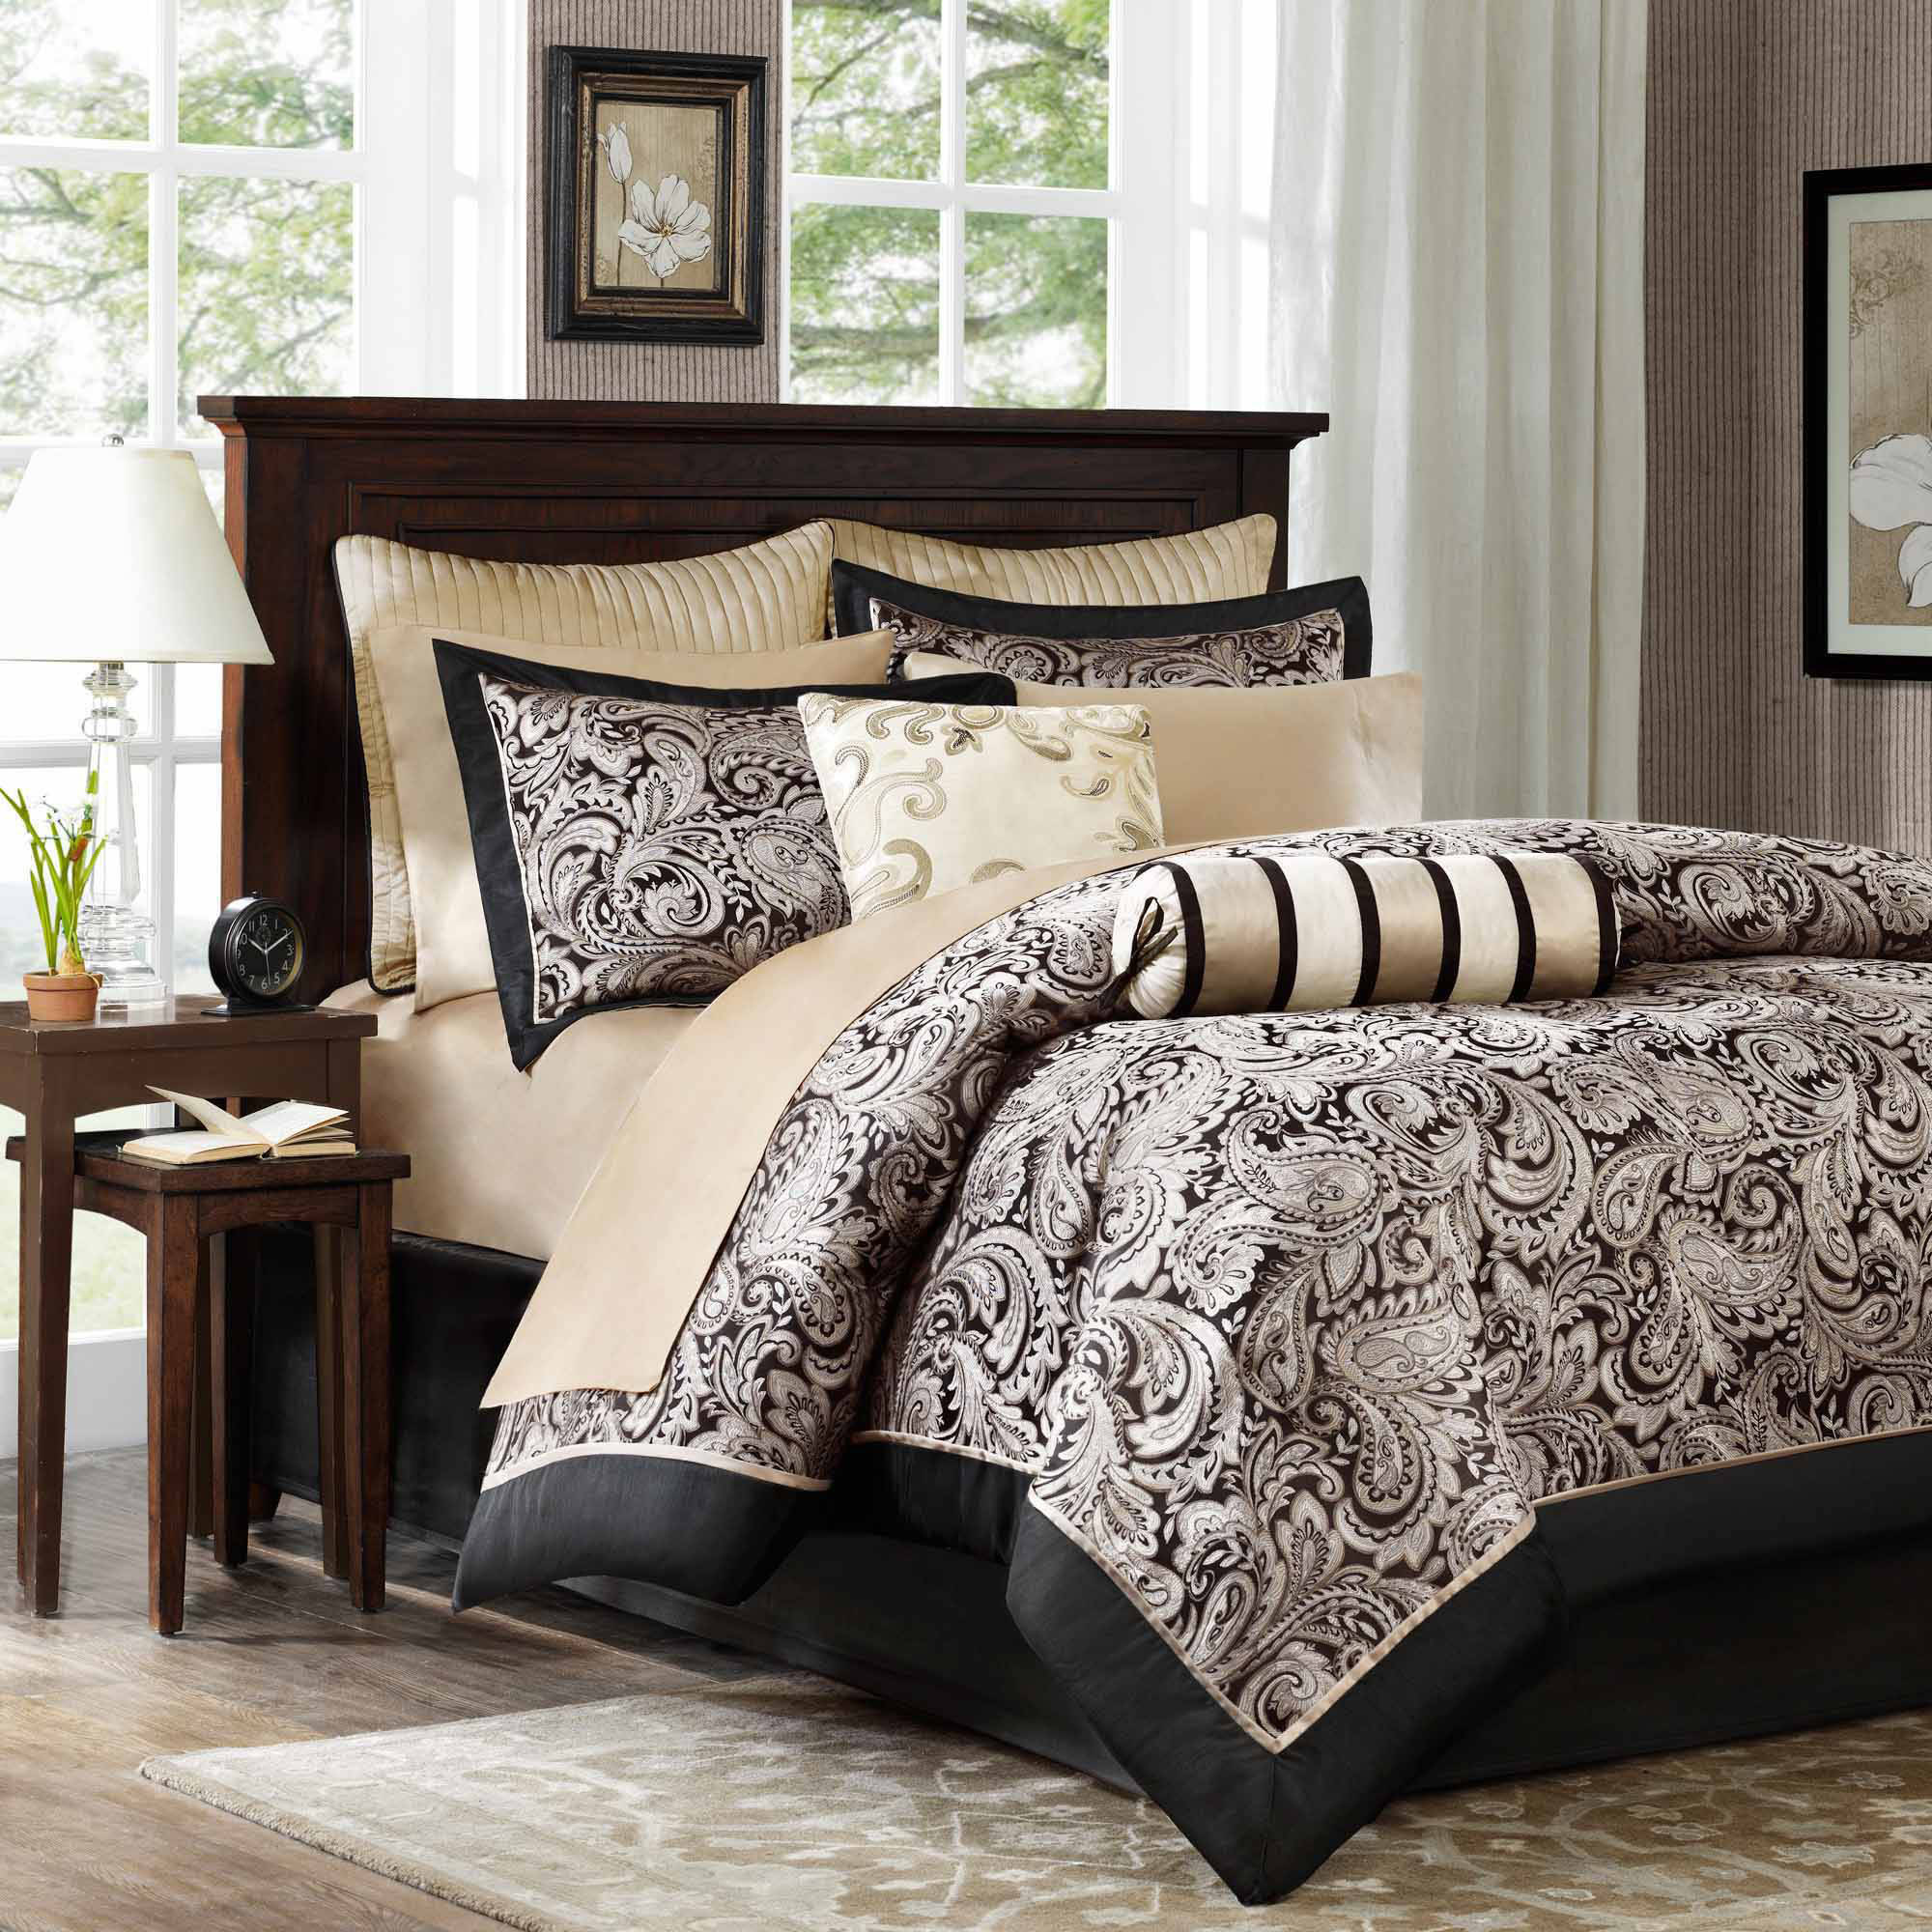 Home Essence Wellington 12-Piece Jacquard Comforter Set